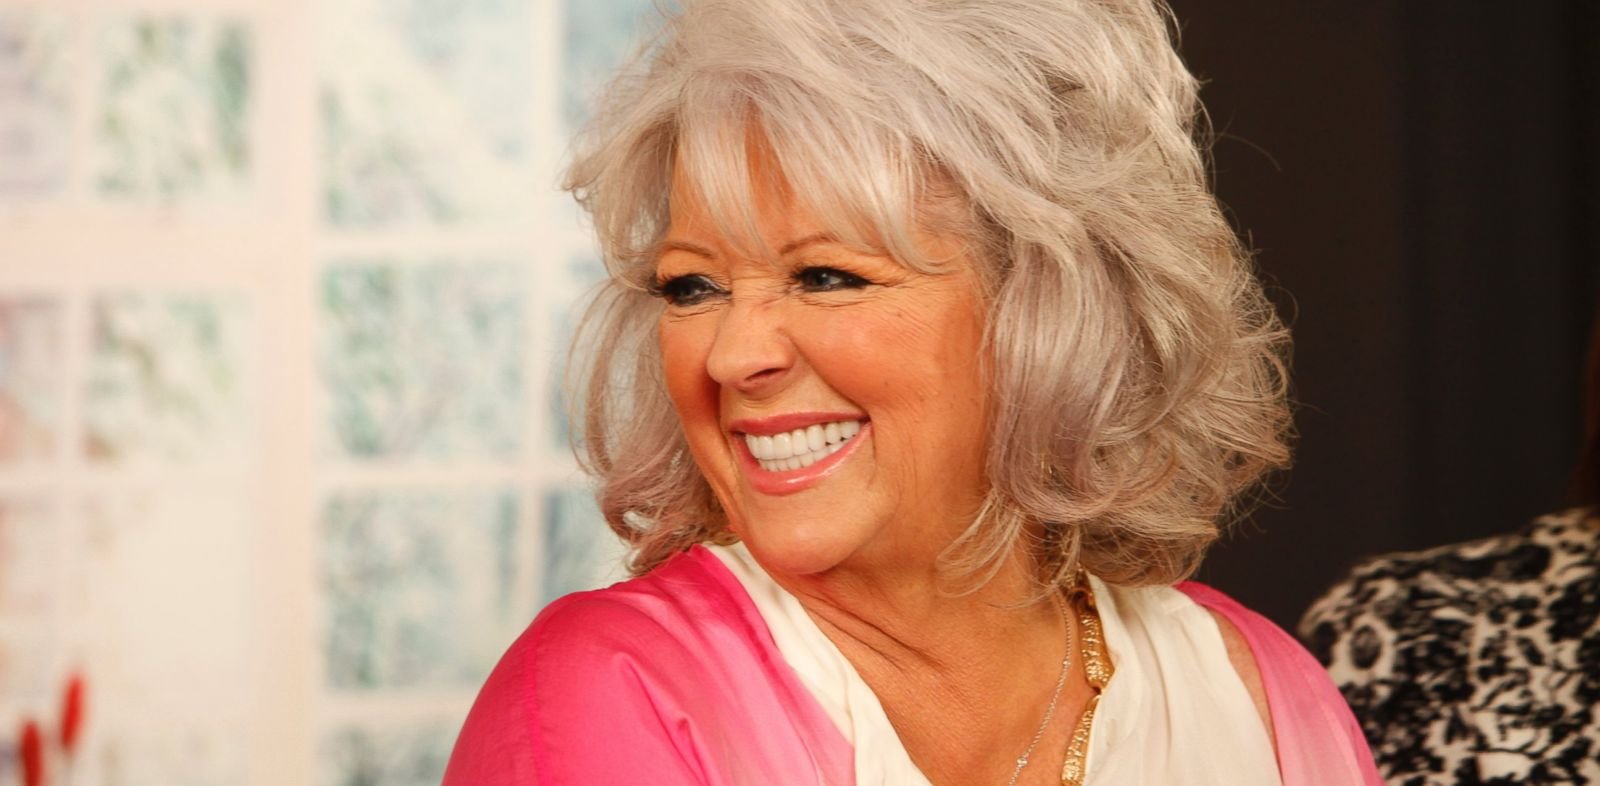 PHOTO: In this file photo, Paula Deen is pictured on Apr. 25, 2013 in Detroit, Mich.